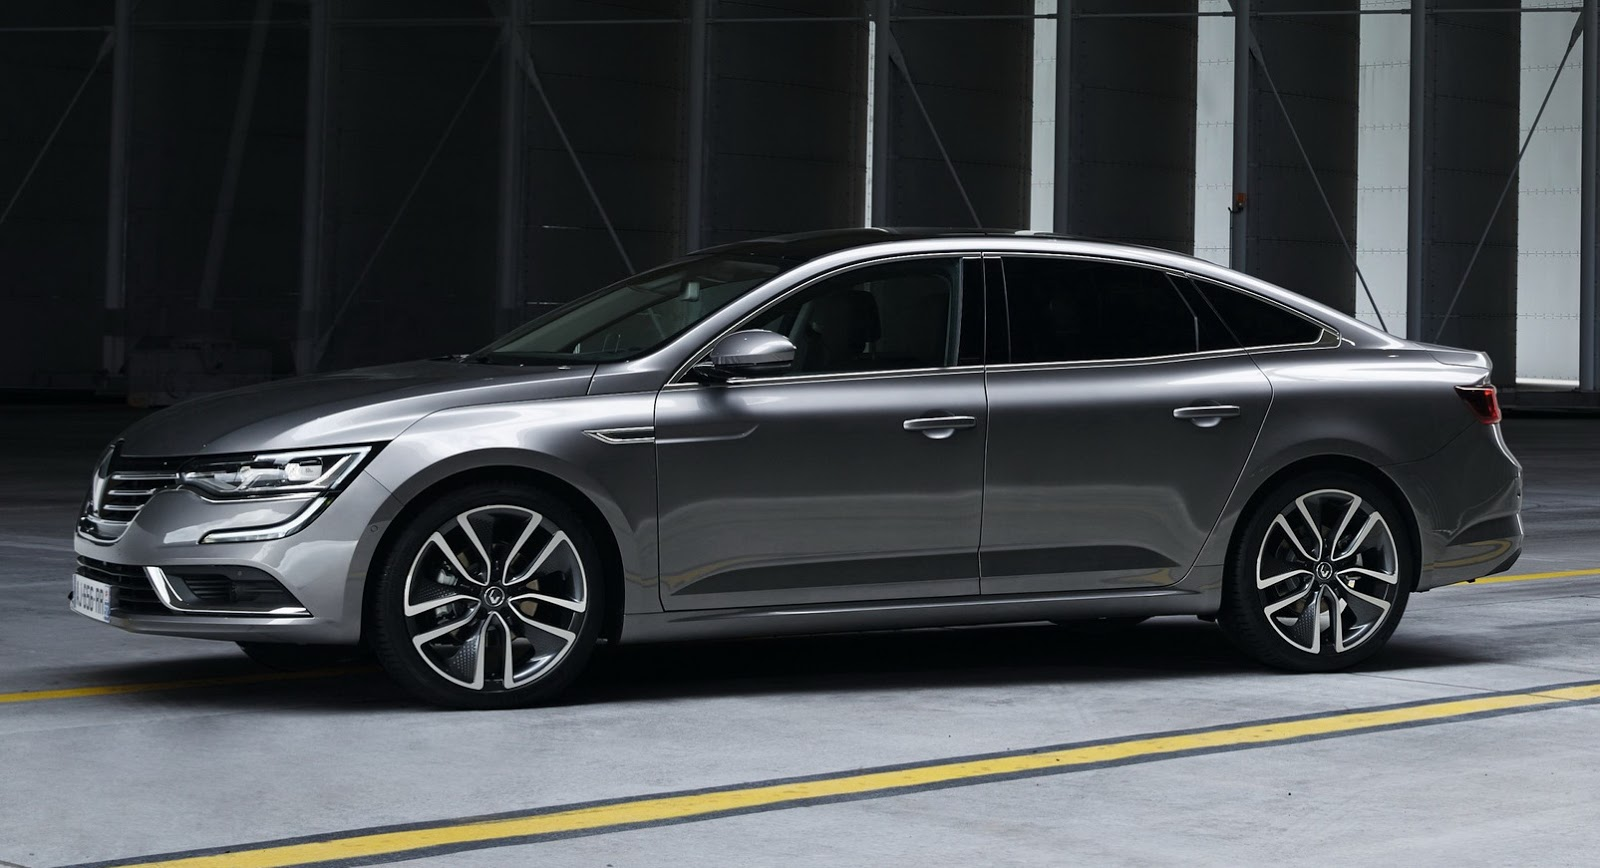 Citroen Ds5 2019 >> The New Renault Talisman Is Out And It's… Unmistakably German [68 Pics & Video] | Carscoops